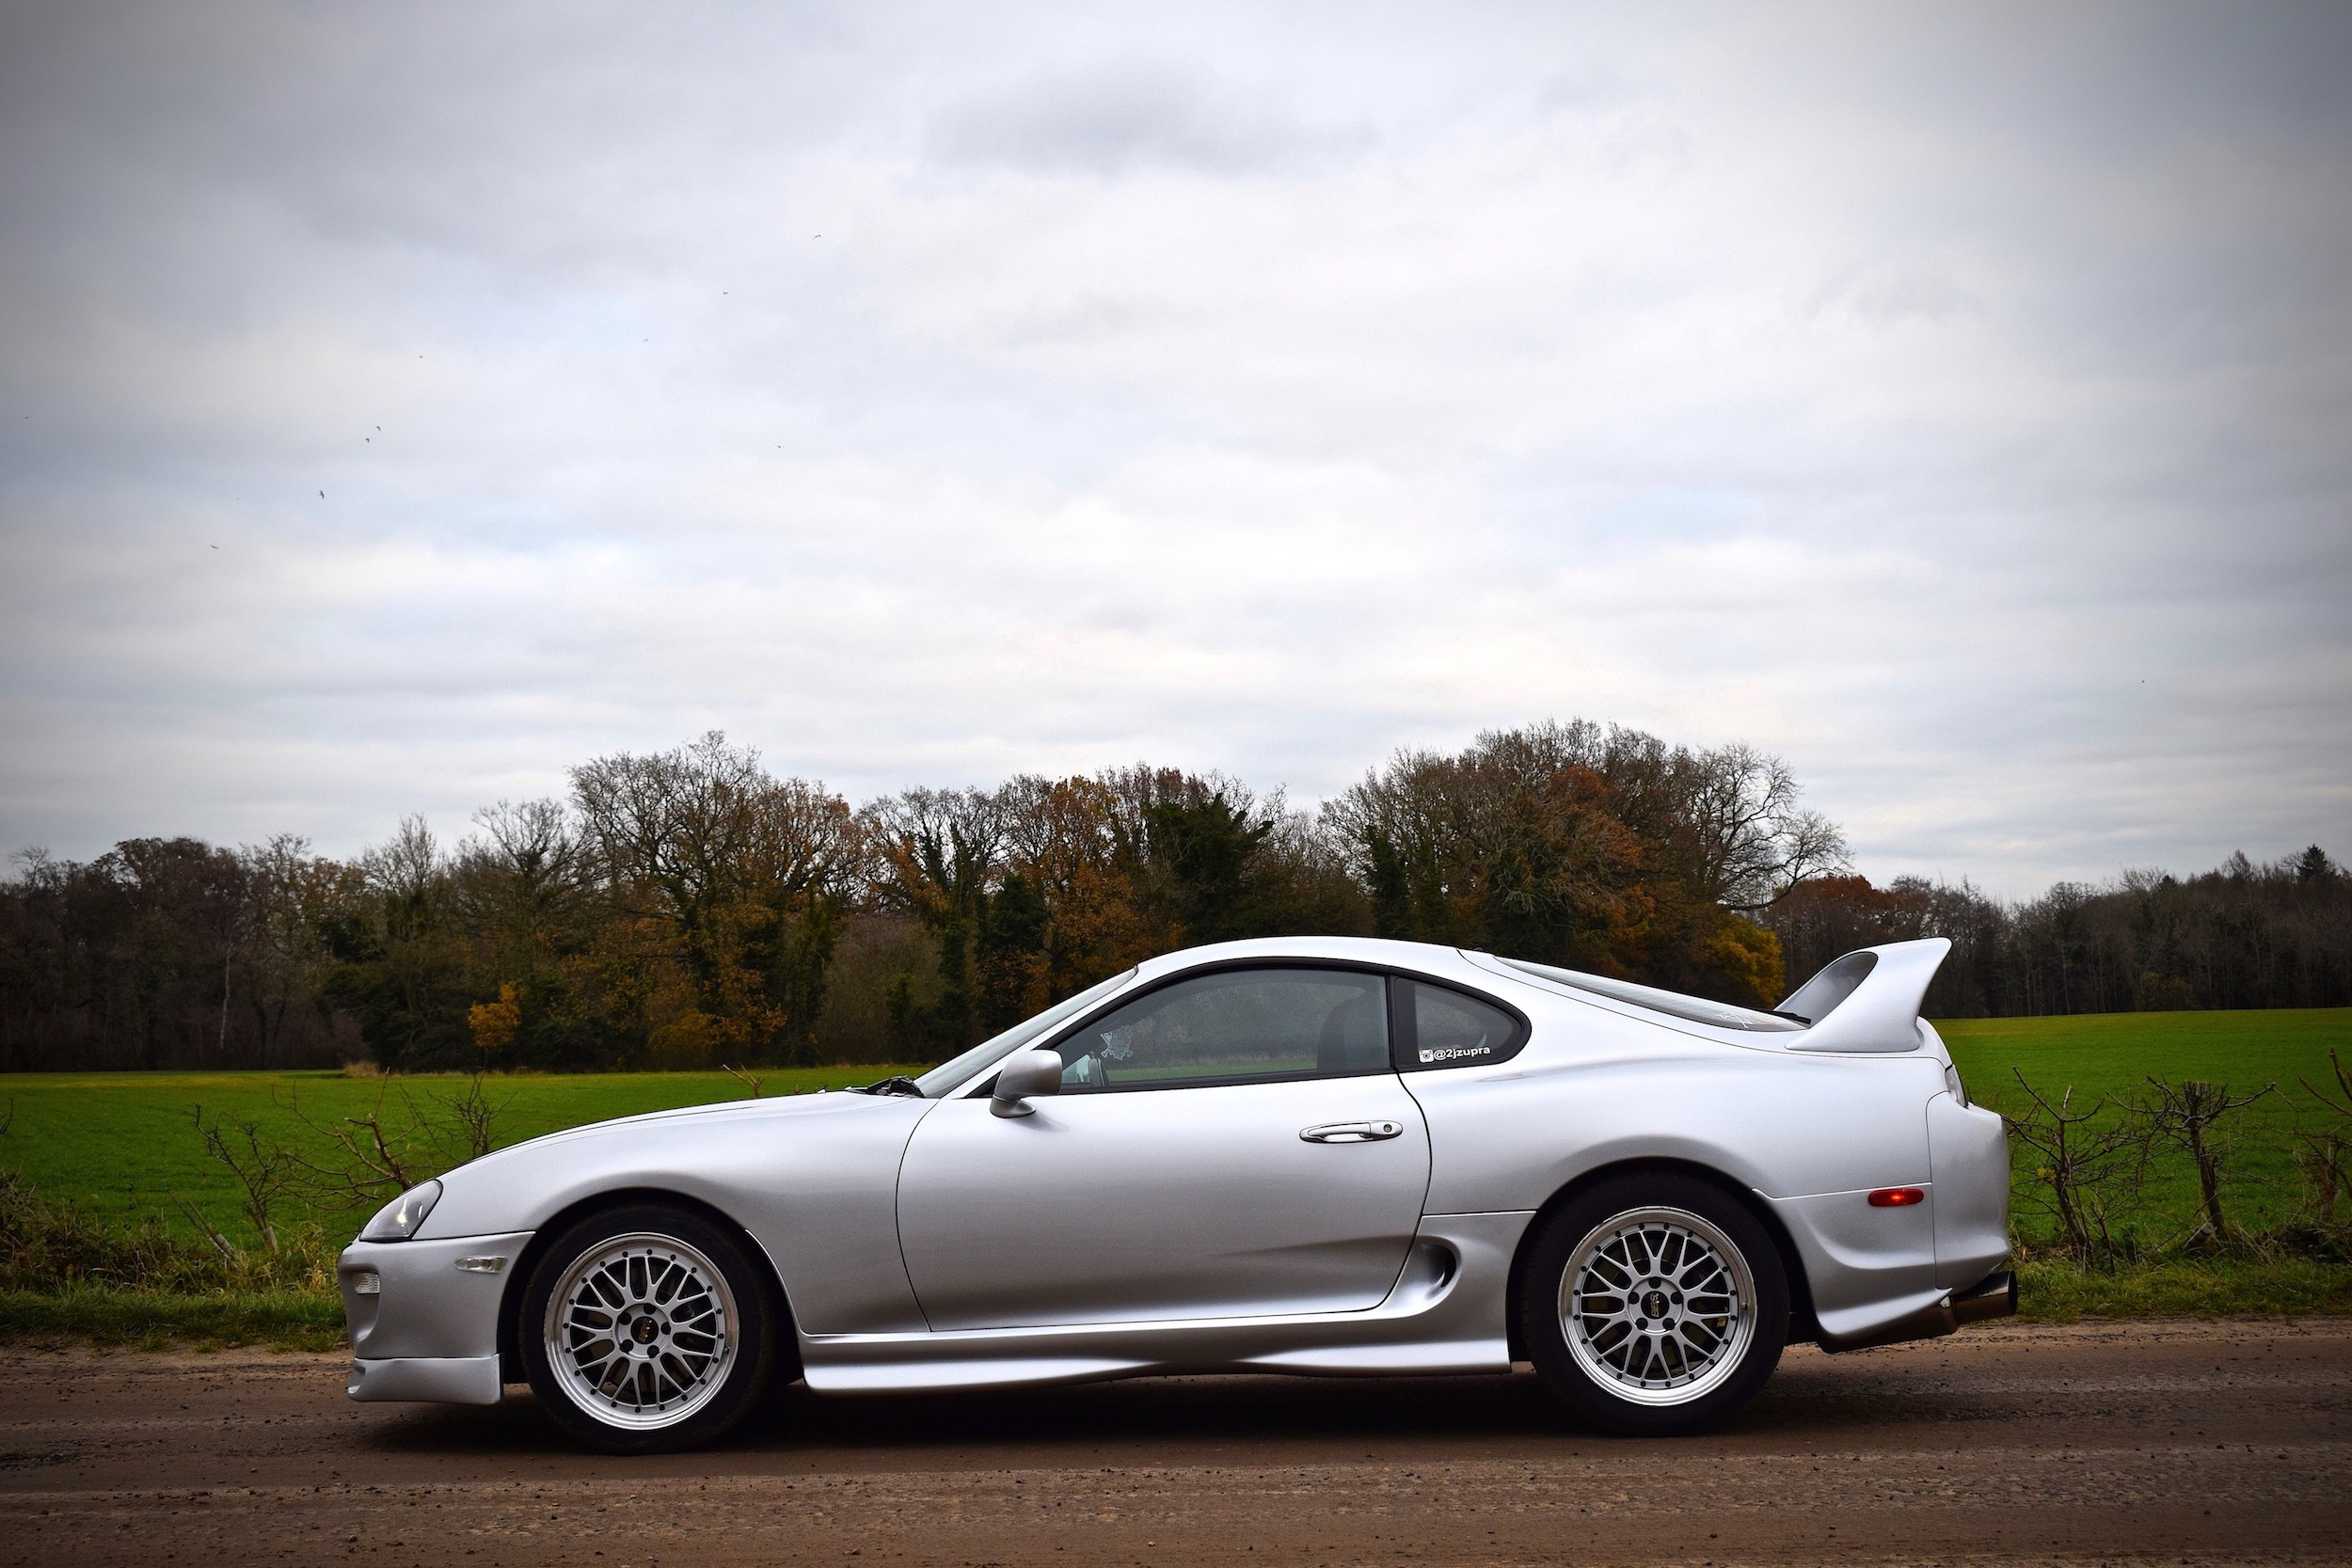 Toyota Supra mark 4